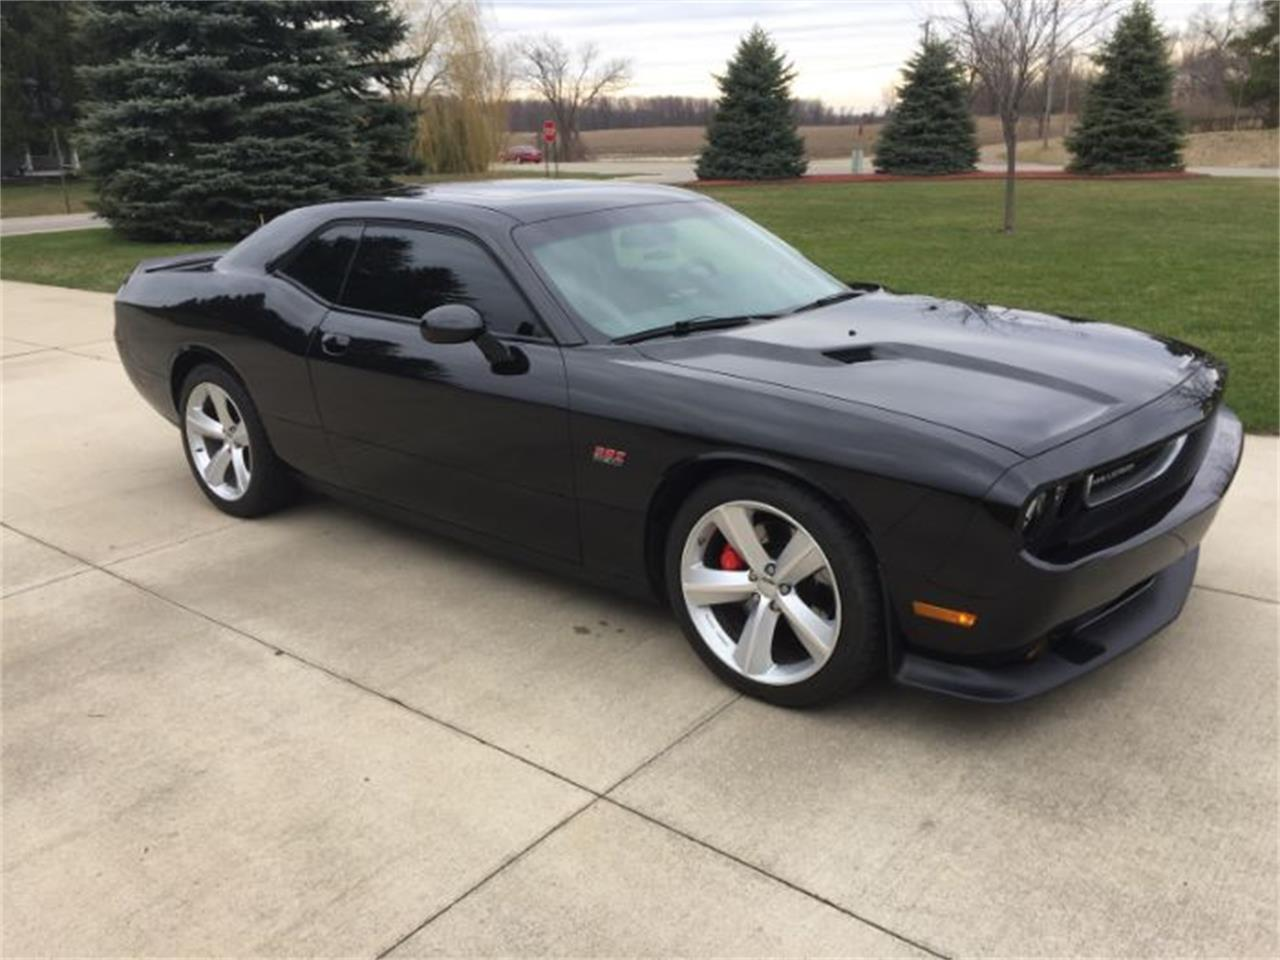 2011 Dodge Challenger (CC-1120476) for sale in Cadillac, Michigan